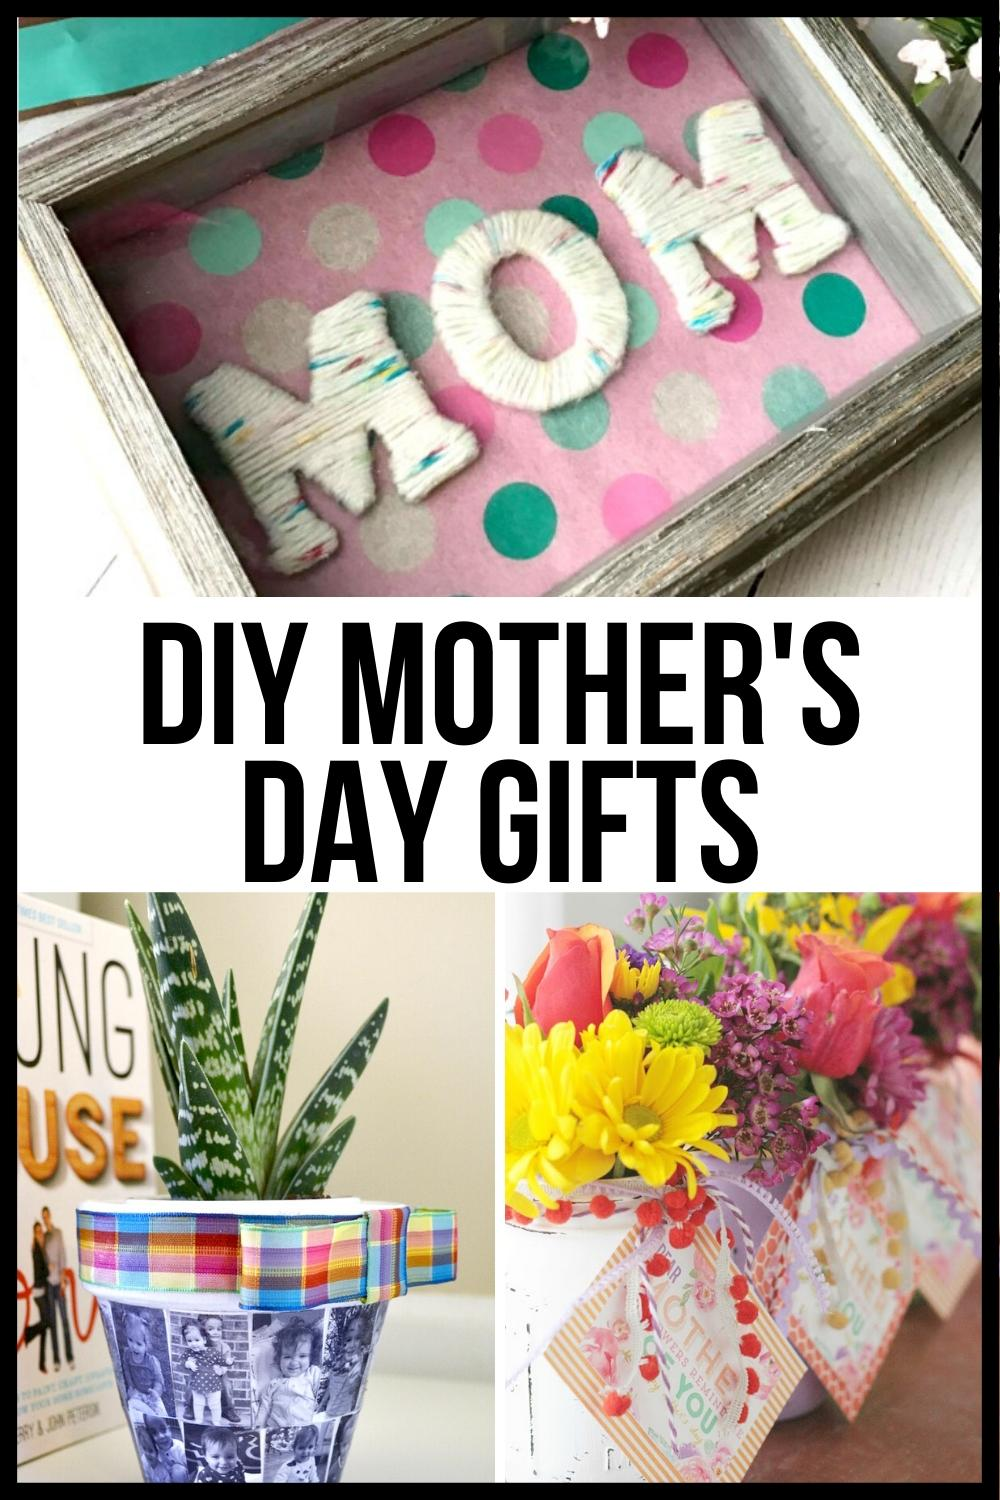 Mother's Day gifts DIY ideas pinterest graphic